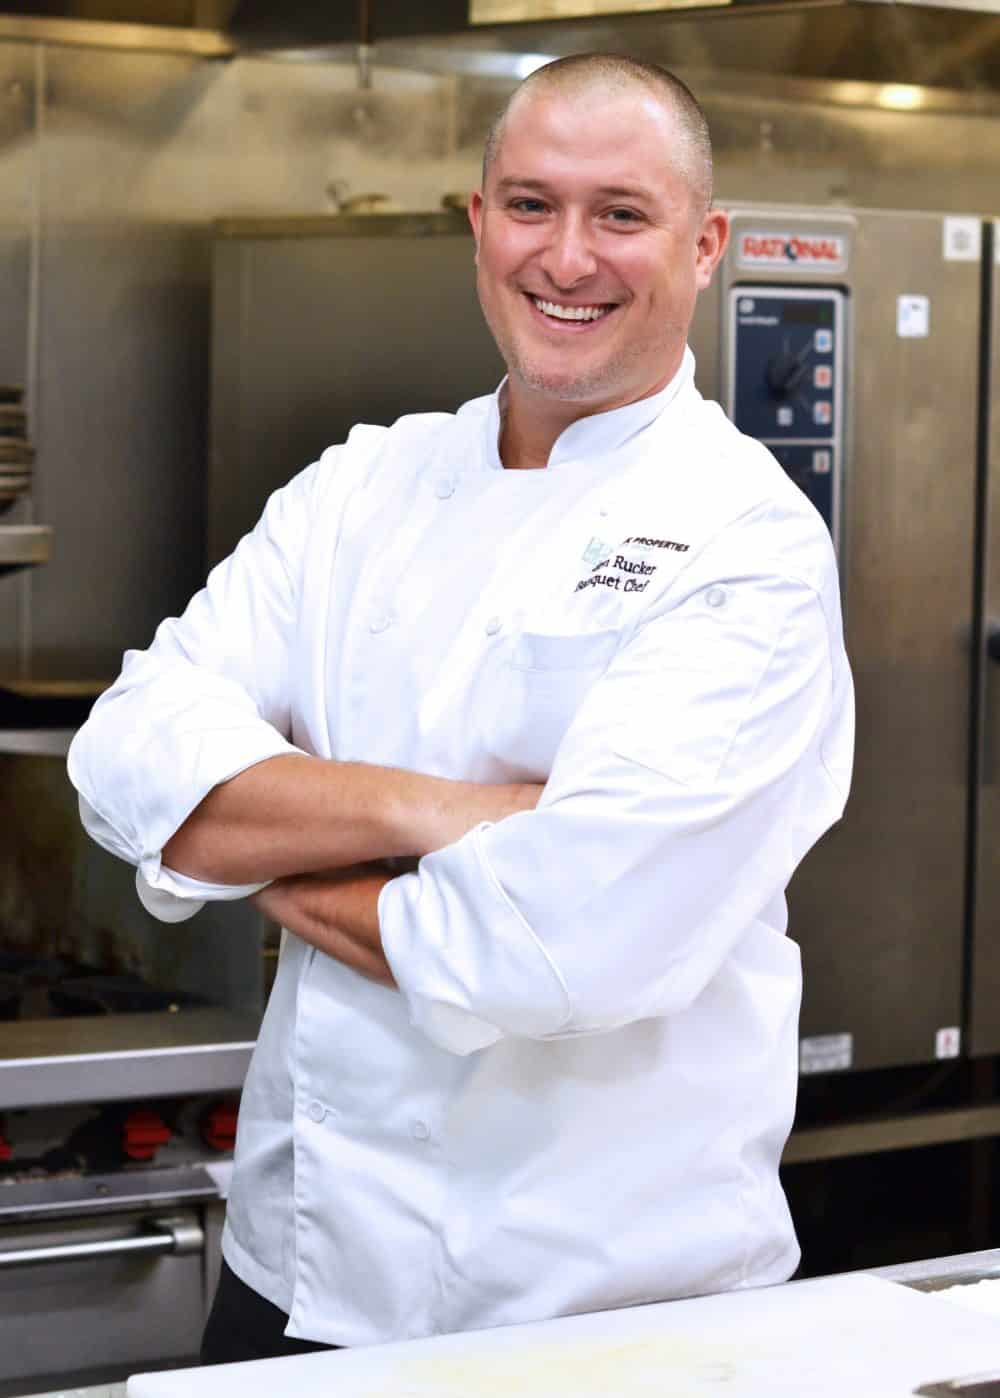 Employee Spotlight: Executive Banquet Chef Peden Rucker